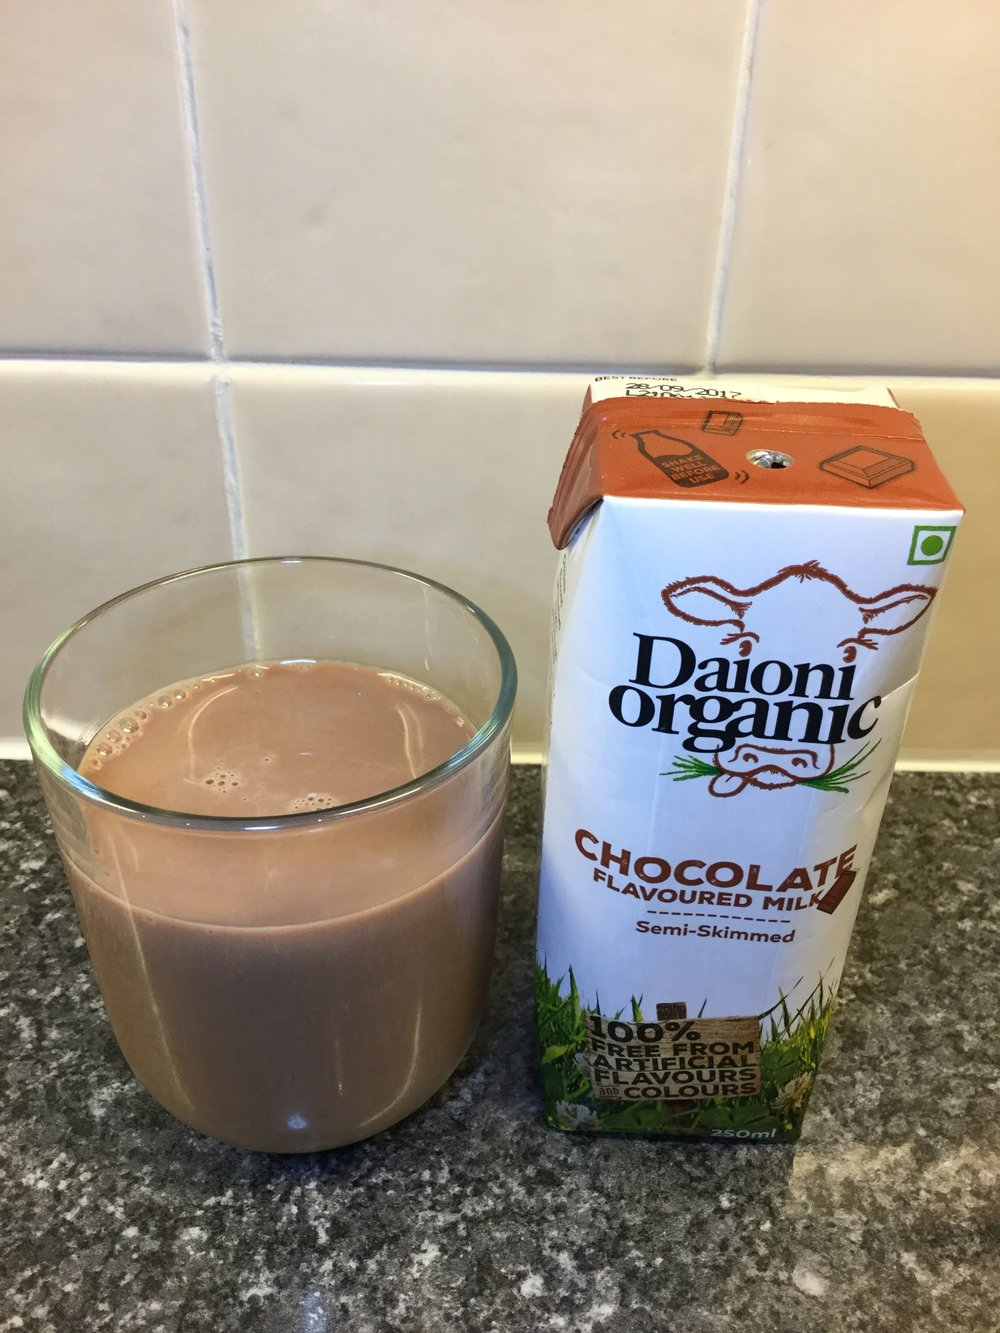 Daioni Organic Chocolate Flavoured Milk Cup